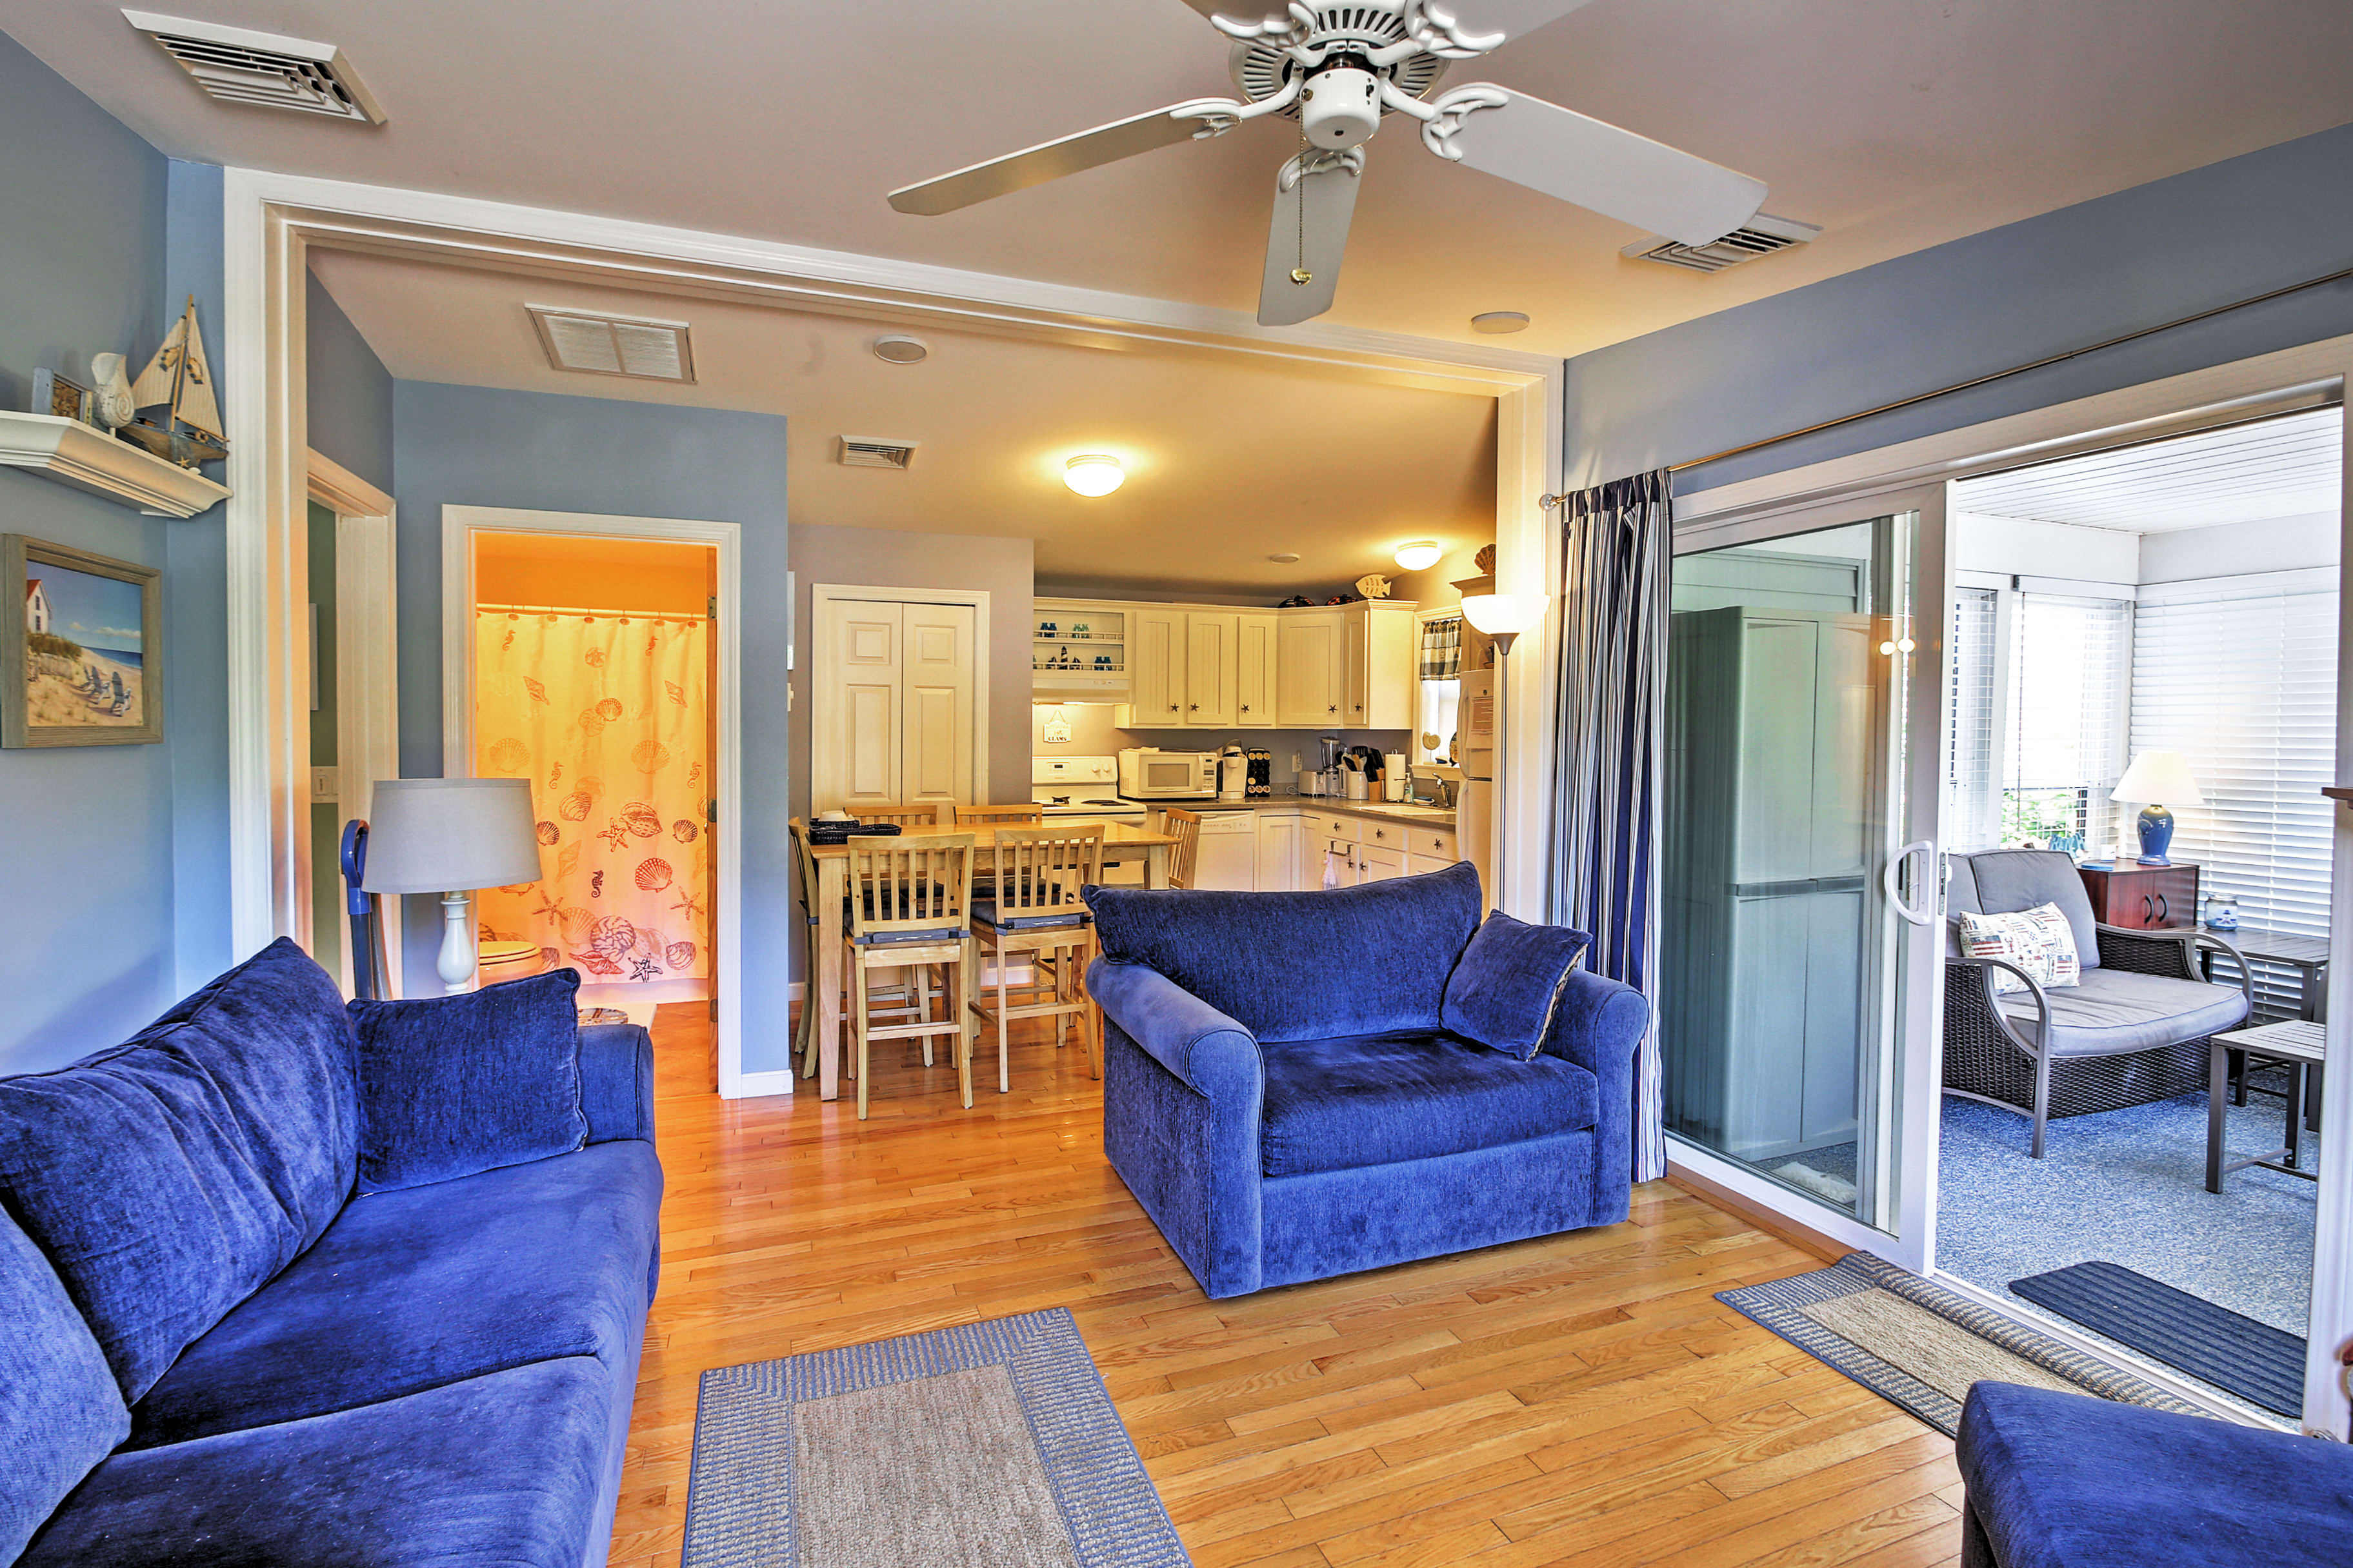 The living area offers plenty of plush seating for your whole group.